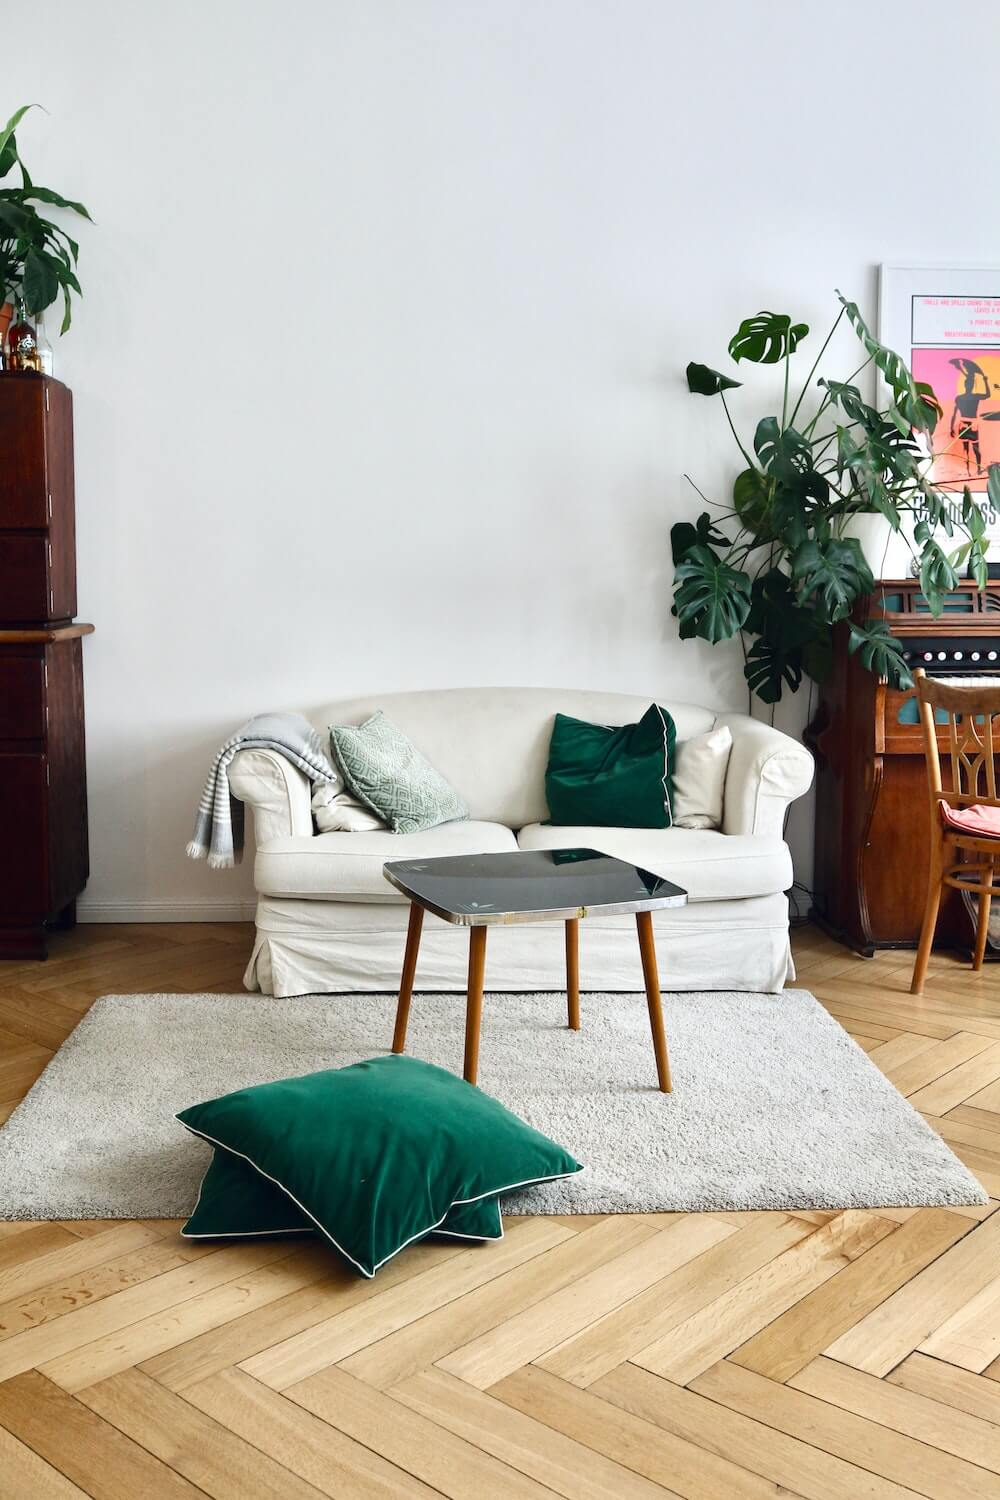 Interior and real estate Photography of a green living room